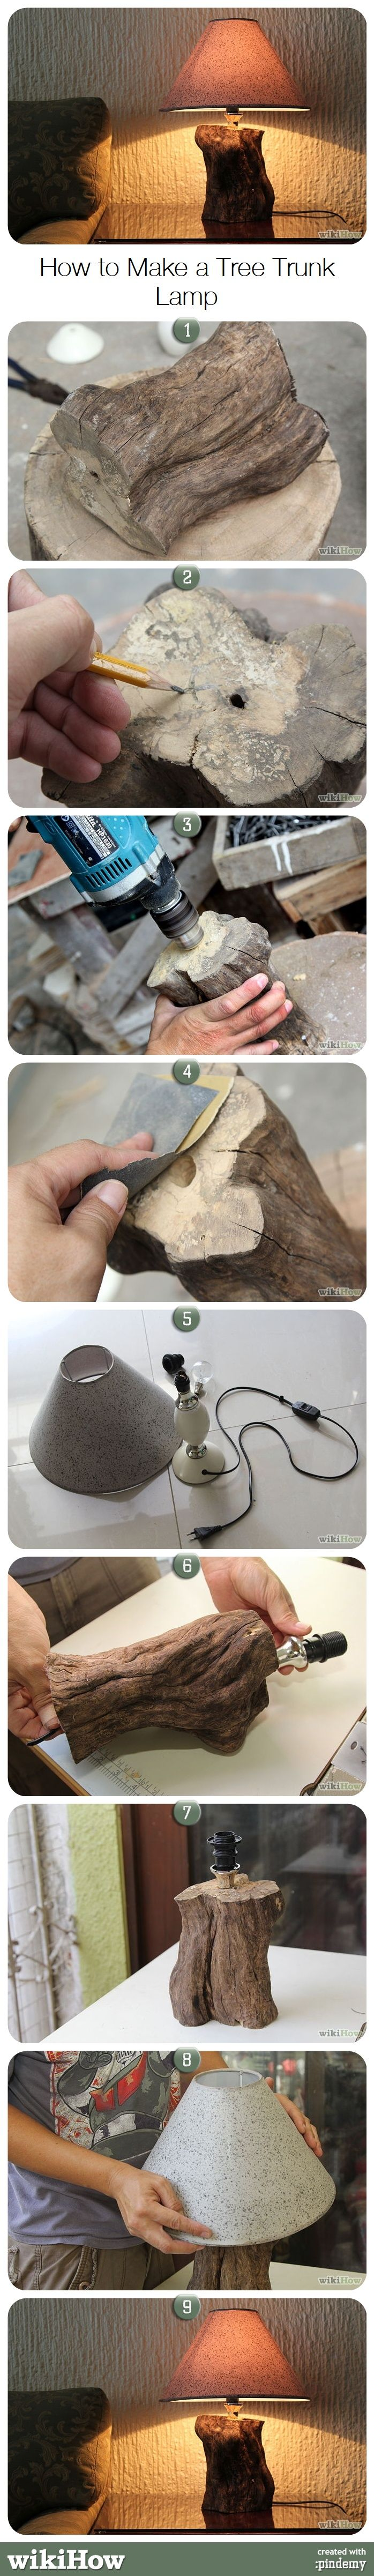 How to Make a Tree Trunk Lamp. #DIY